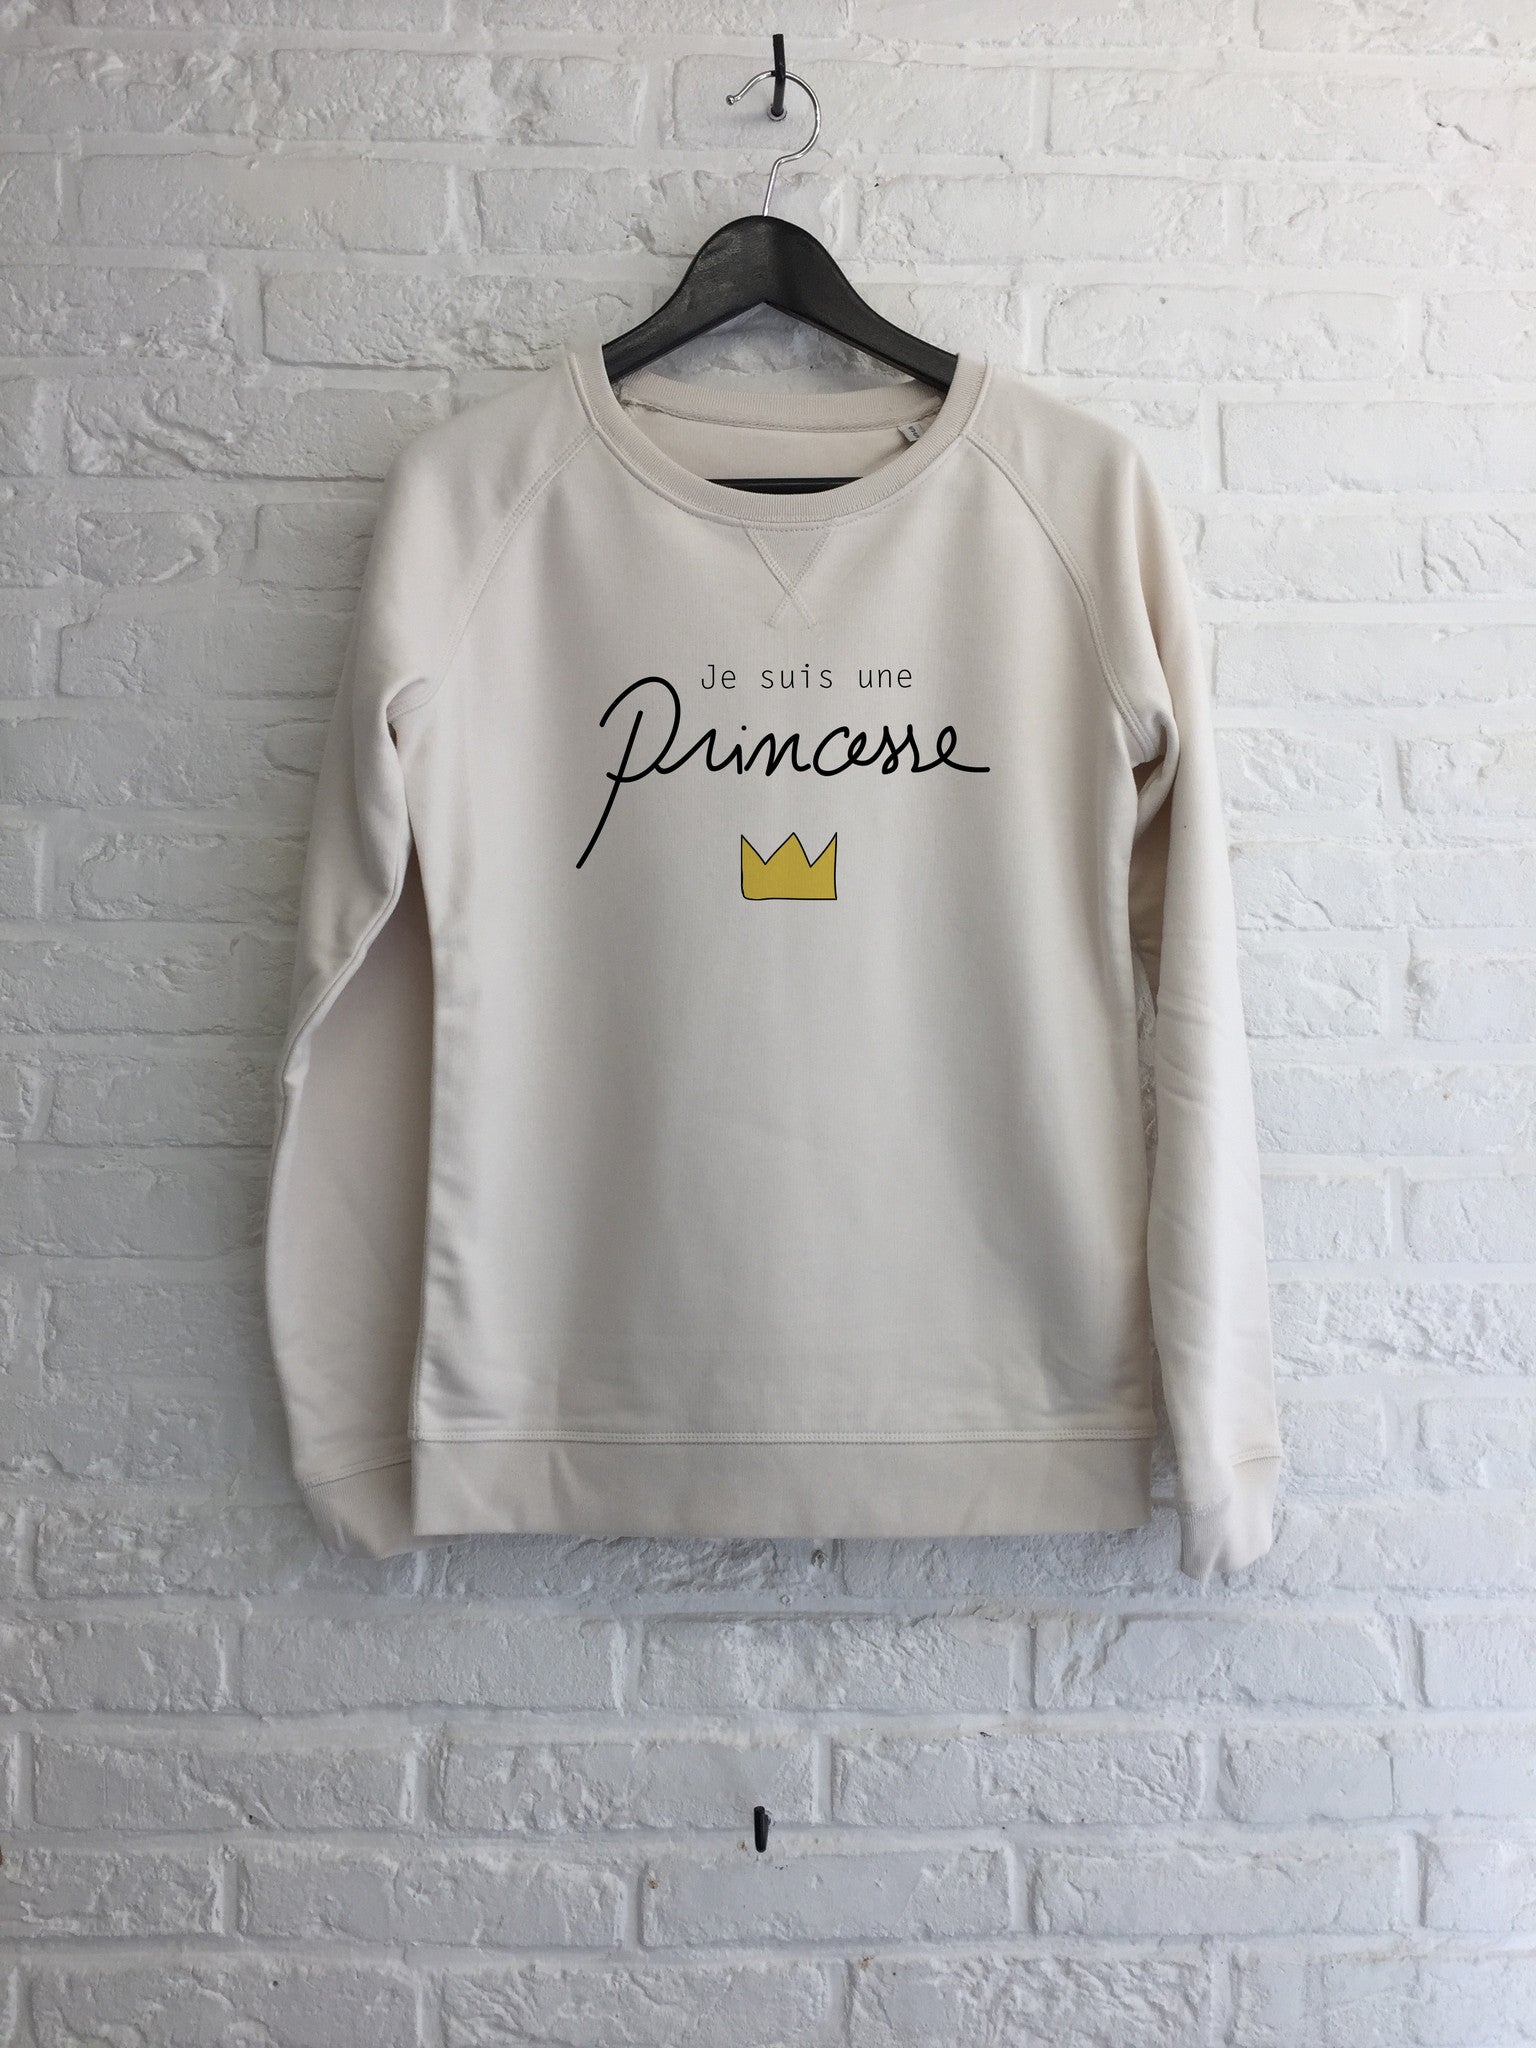 Je suis une Princesse - Sweat - Femme-Sweat shirts-Atelier Amelot